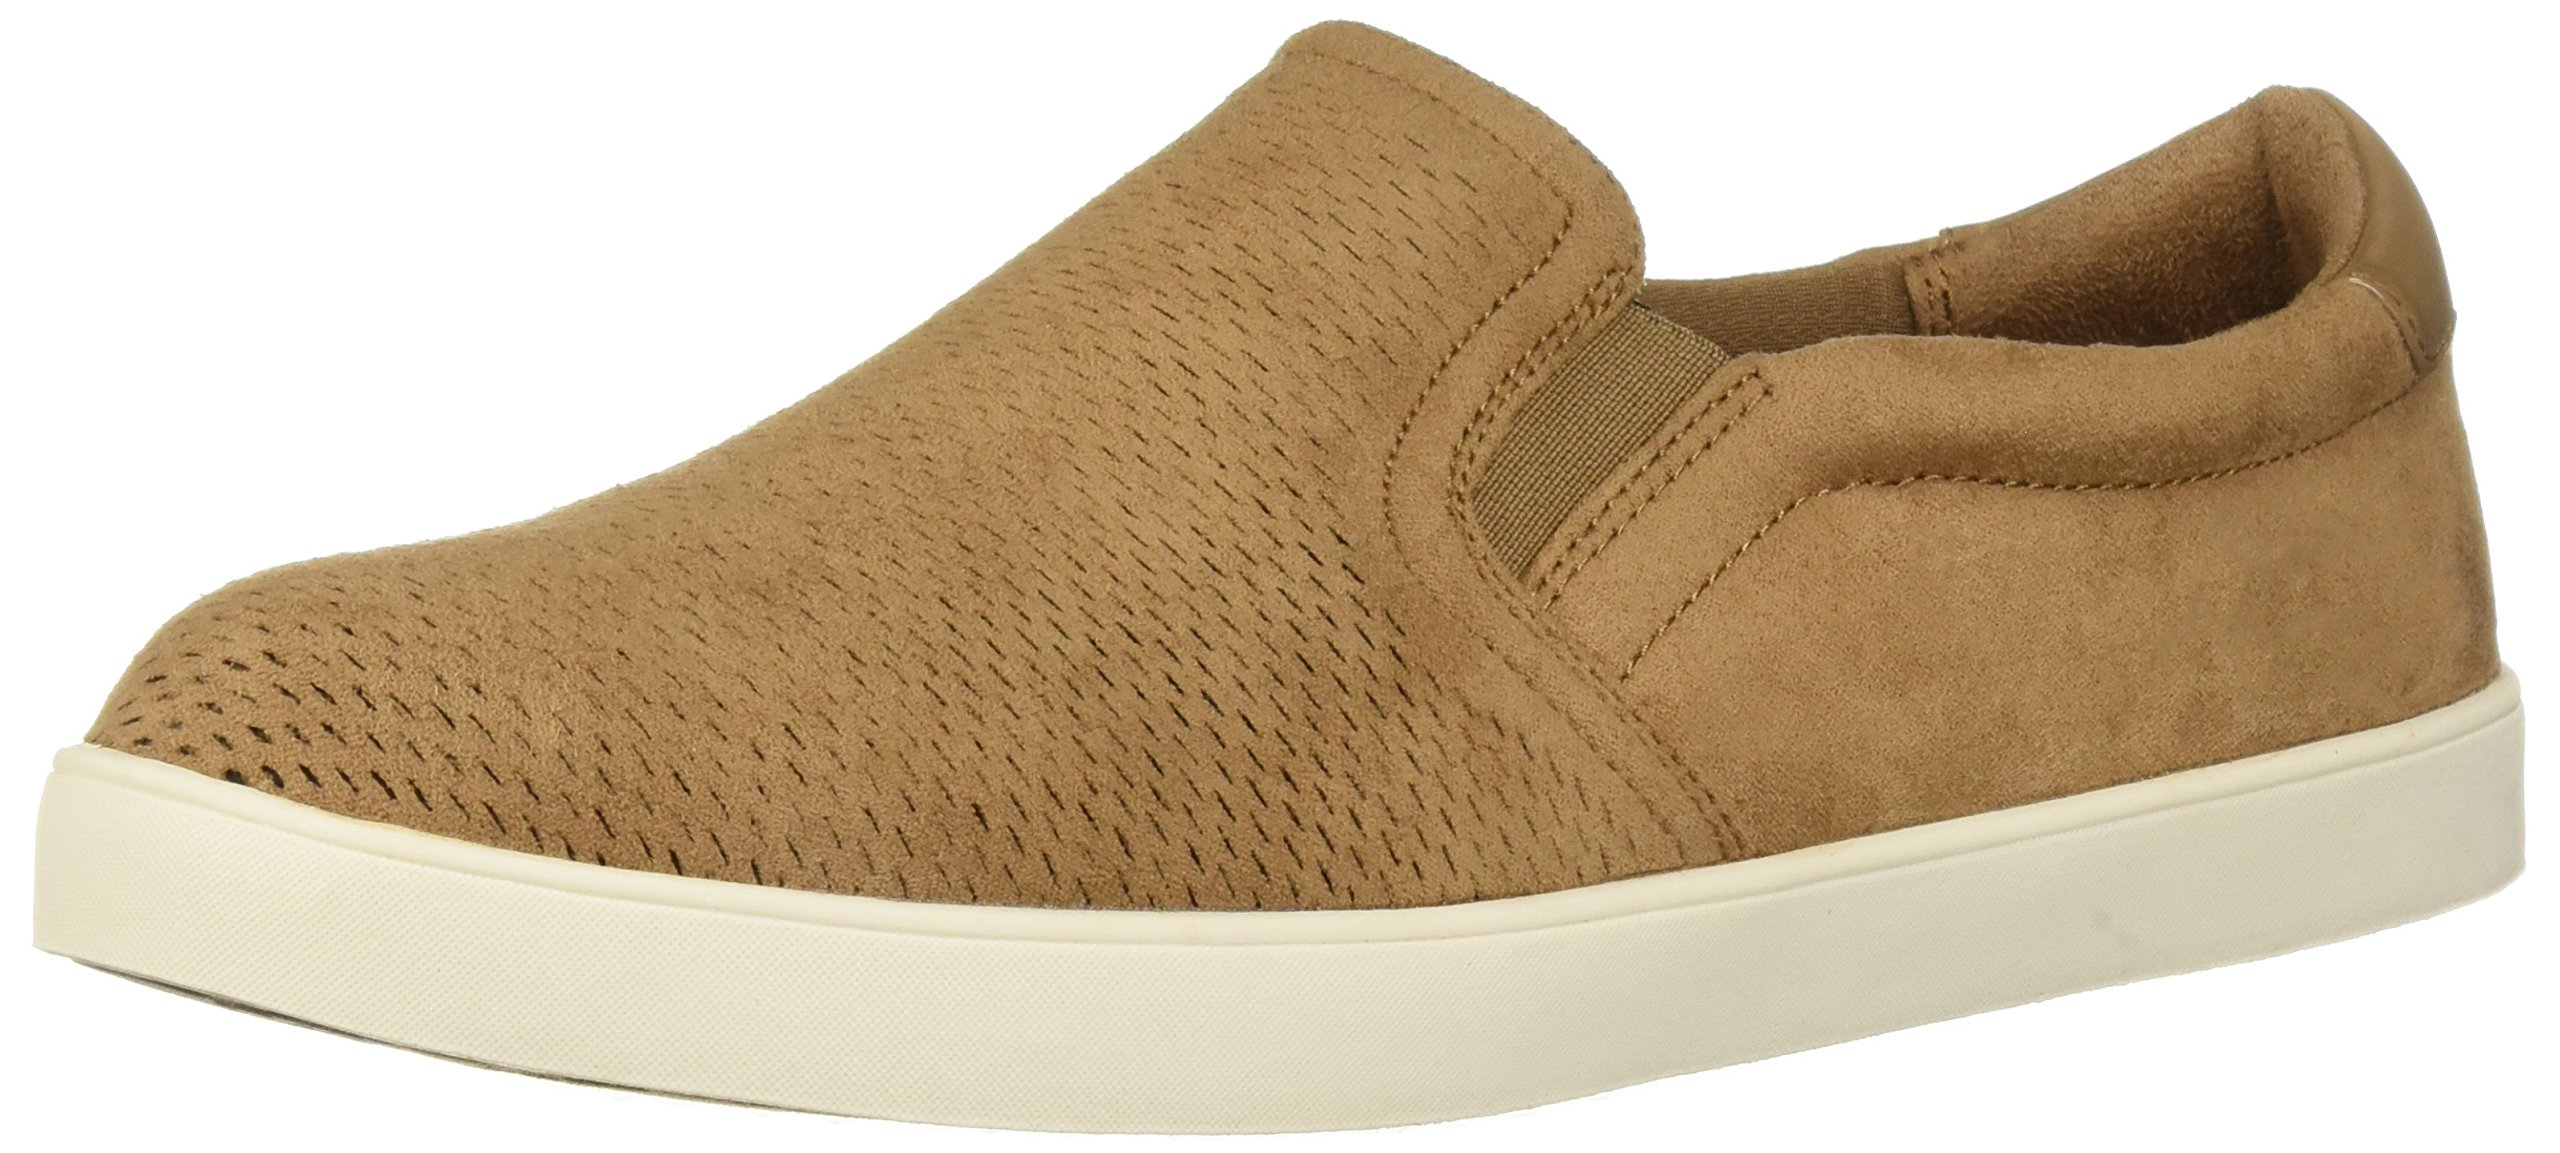 Dr. Scholl's Shoes Women's Madison Sneaker, Toasted Coconut Cool Microfiber, 11 M US